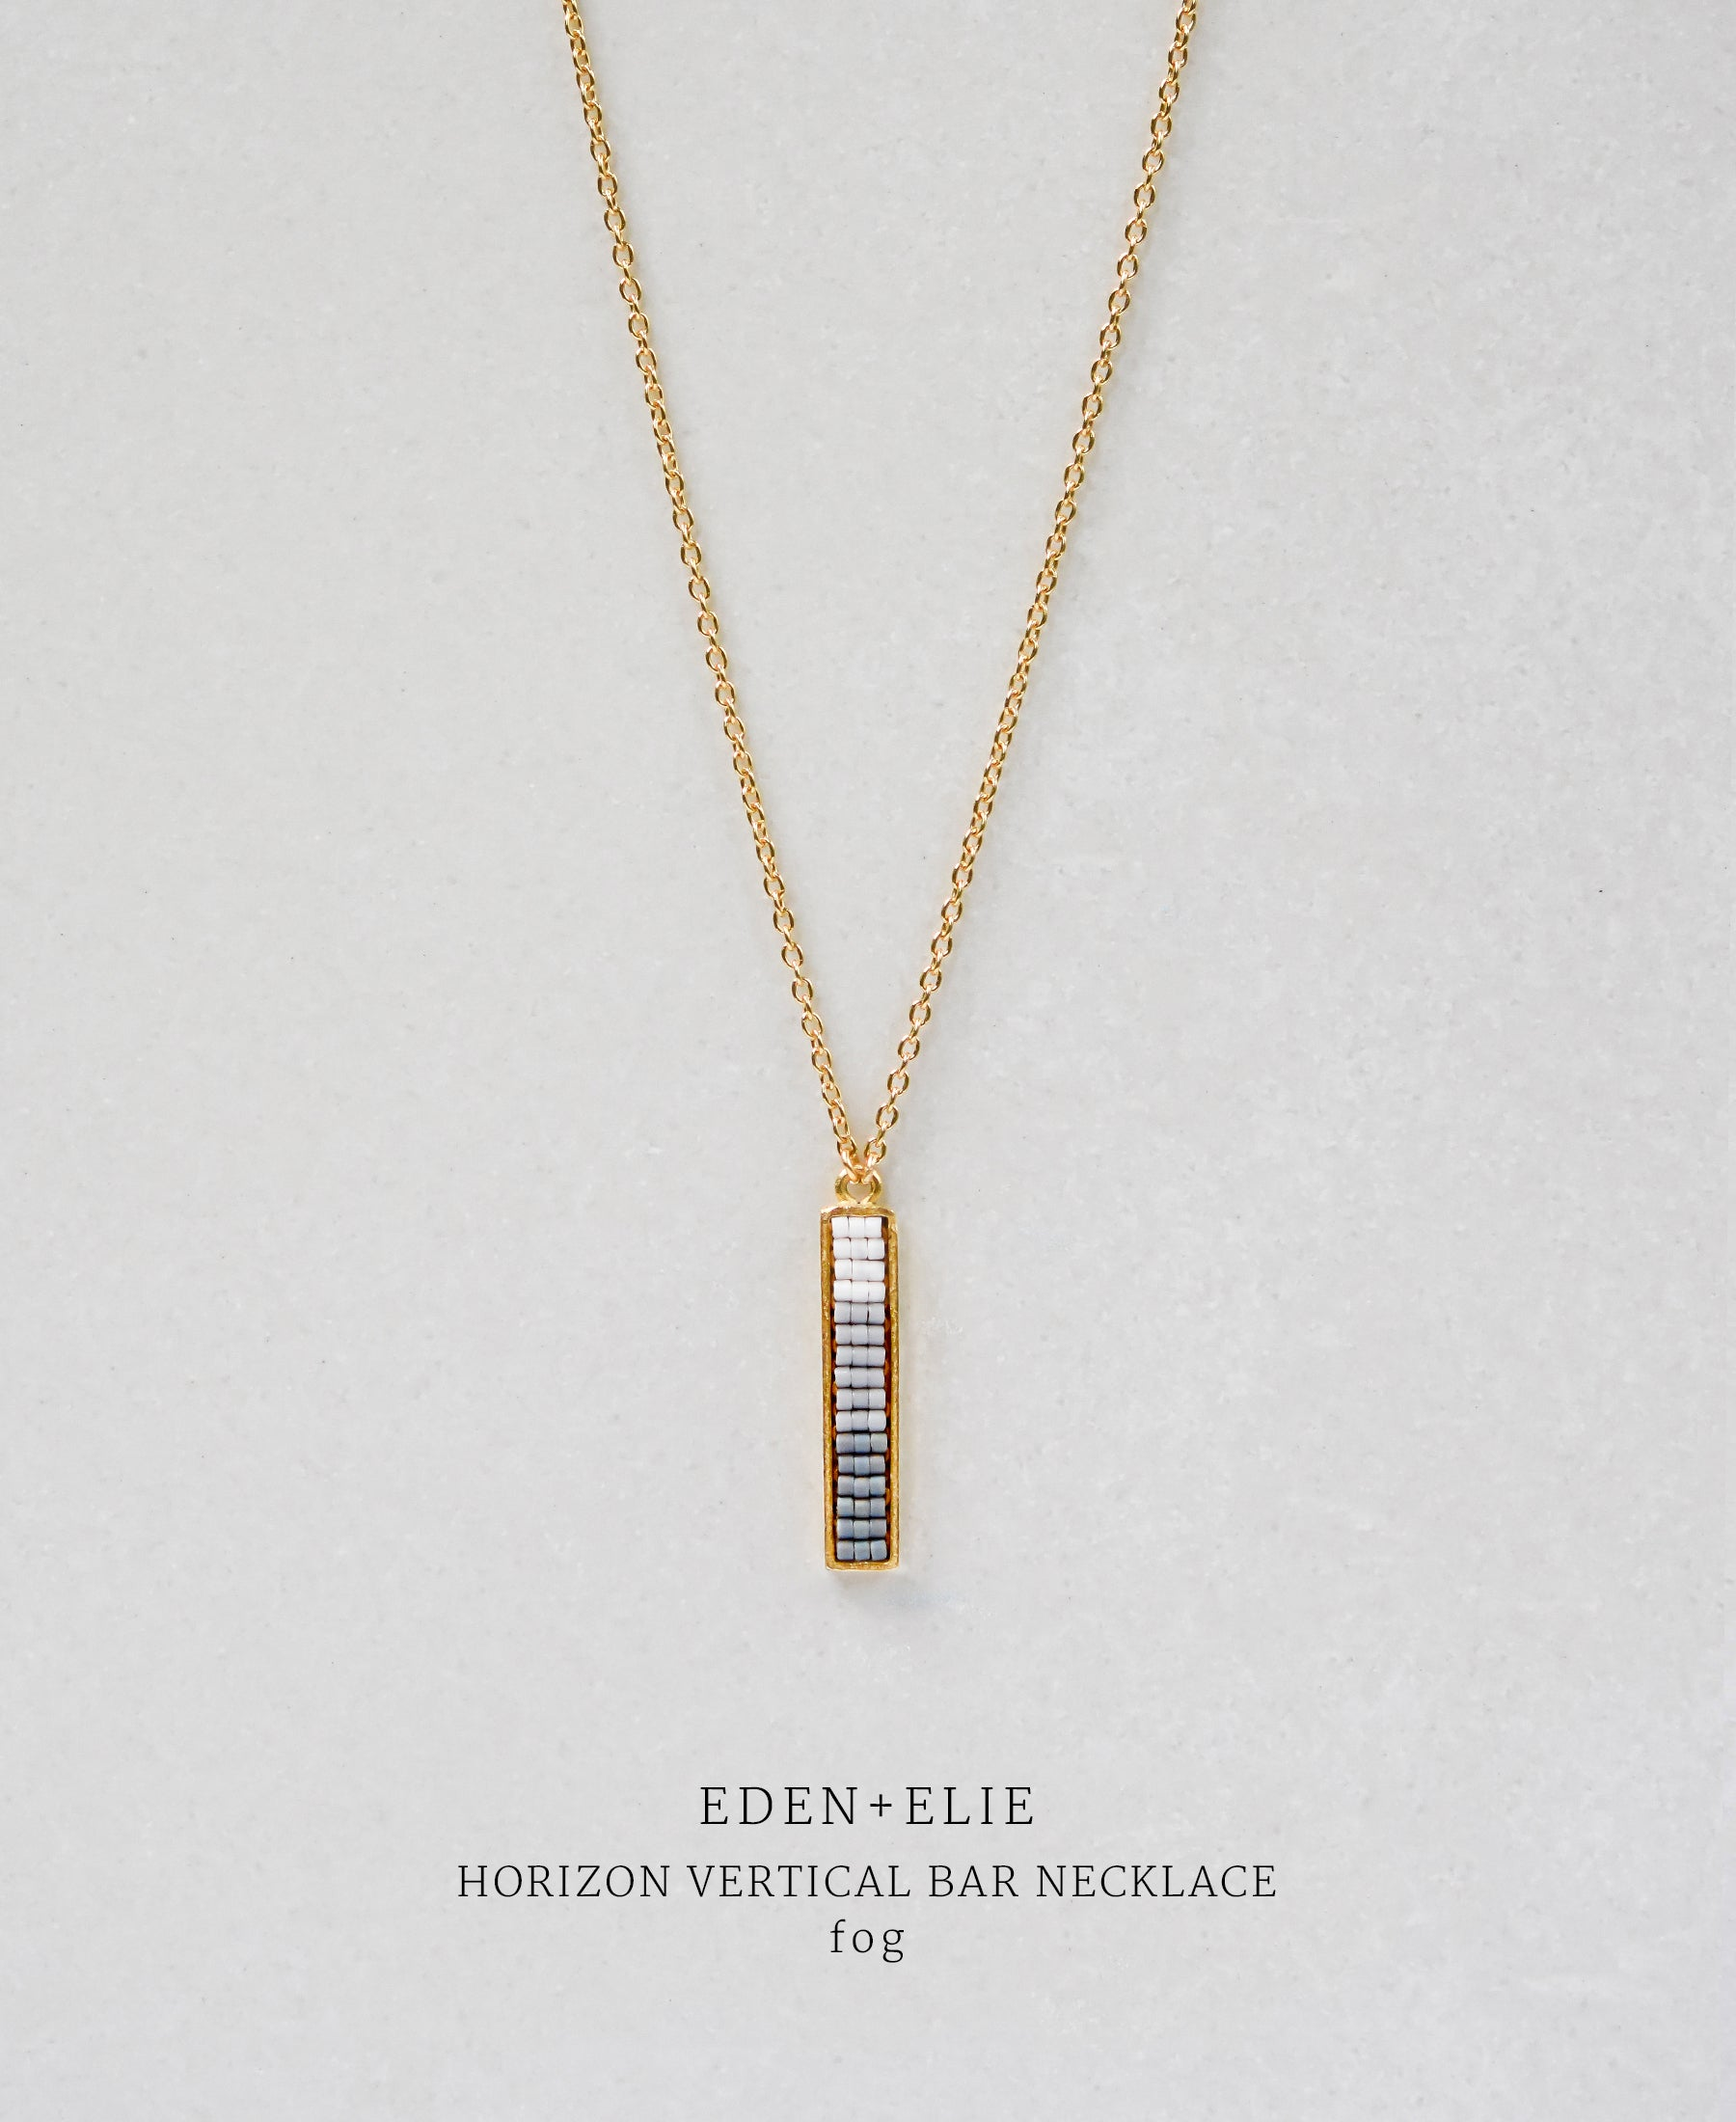 EDEN + ELIE Horizon Vertical bar necklace - fog grey